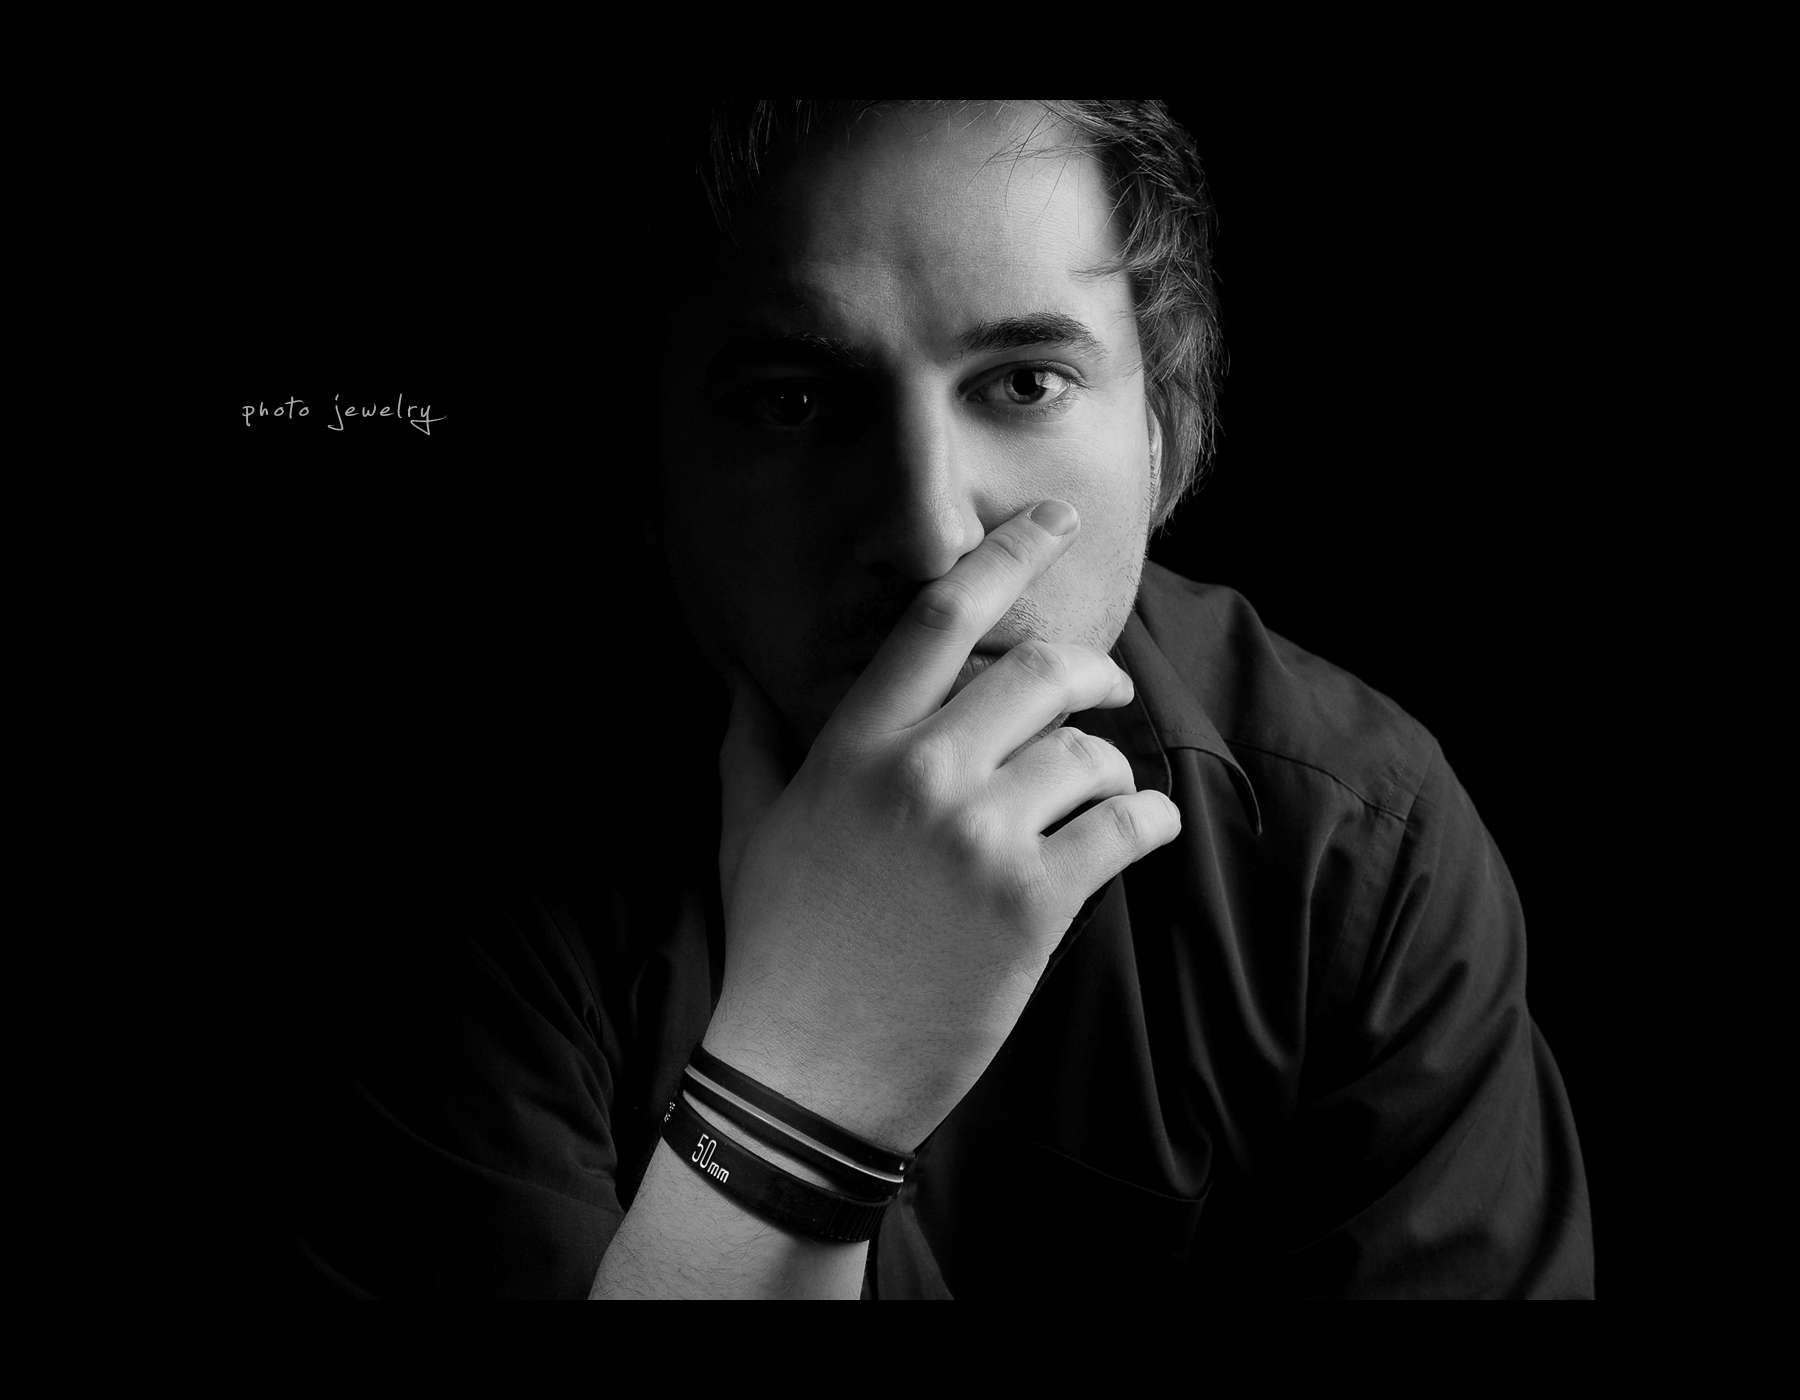 Project 365, Day 359, 359/365, Self Portrait, Strobist, on black, black background, photo jewelry, Lens Bracelet, black and white, B&W, Canon ef 24-70 f2.8,